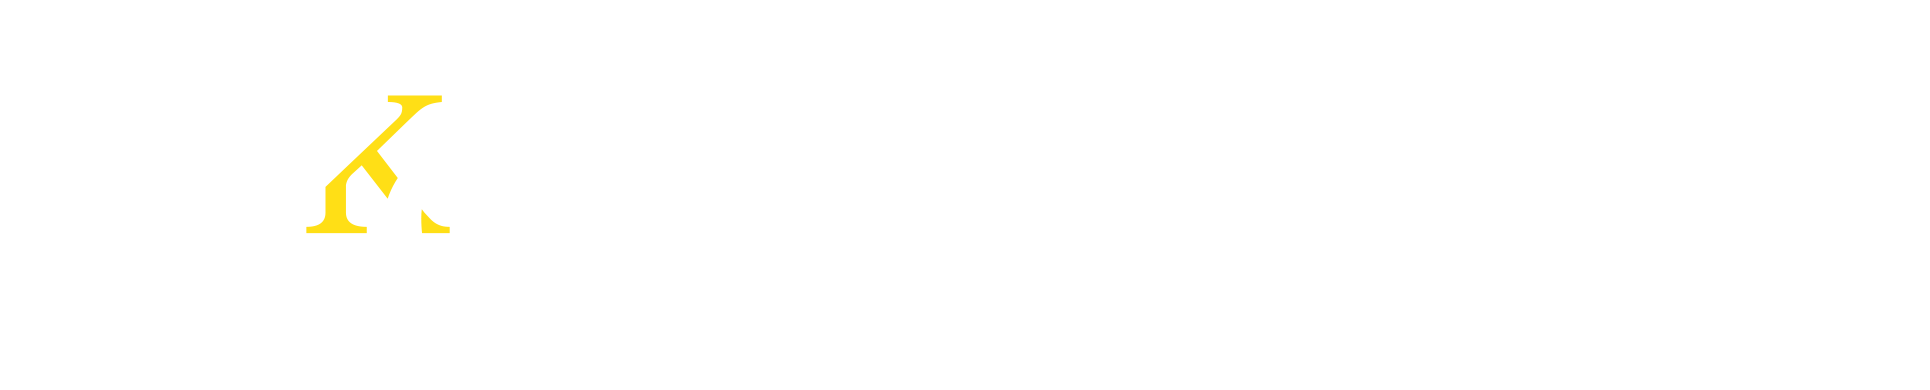 together and ready text graphic